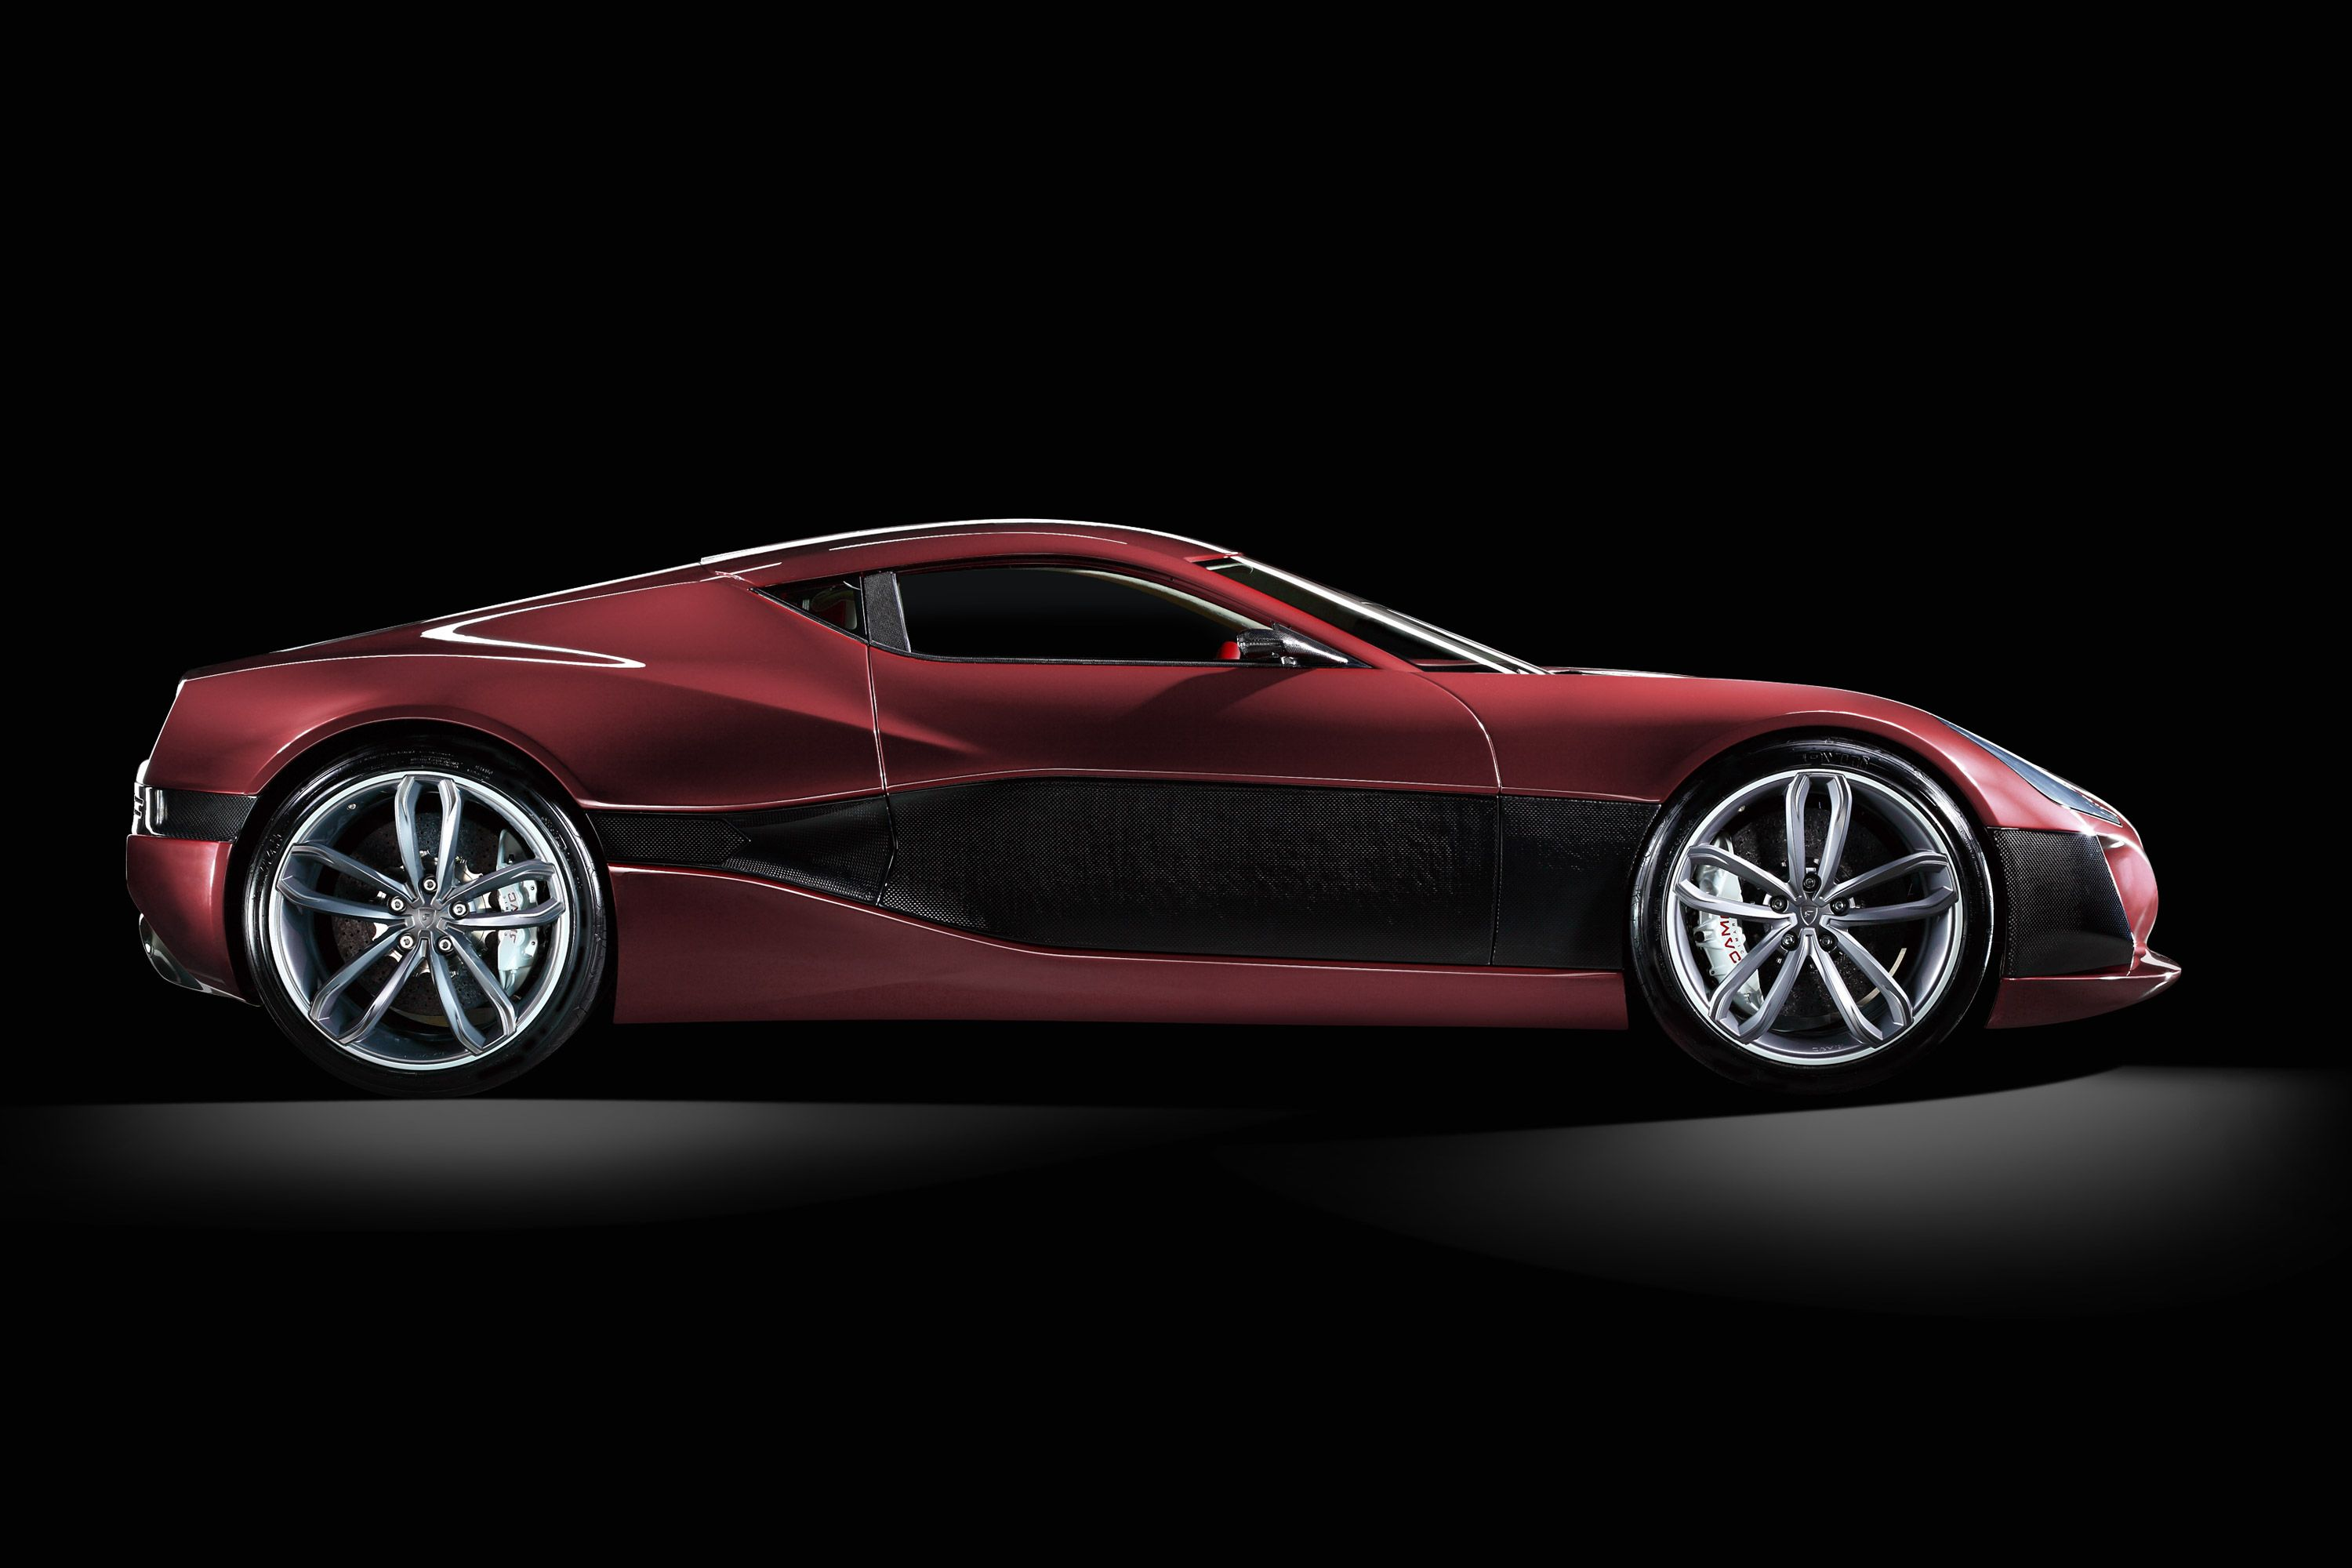 The Concept One Is The World S First Electric Supercar With A New Propulsion Concept Straight Out Of Croatia Near Zagreb Wit Super Cars First World Concept